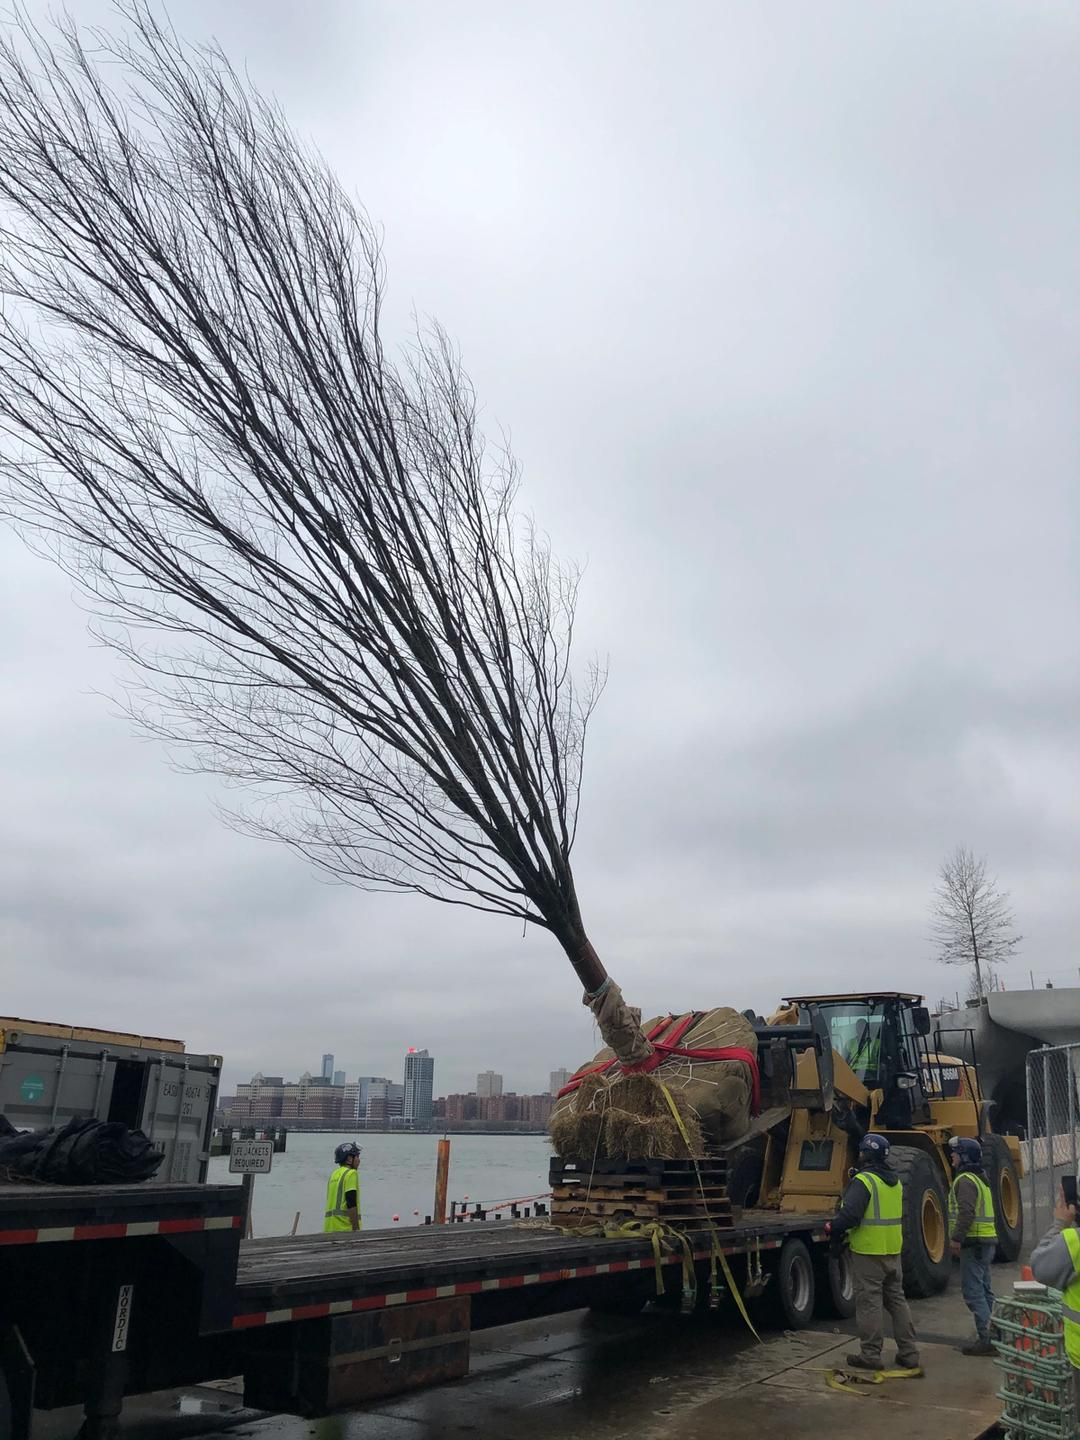 A tree being transported on a truck.